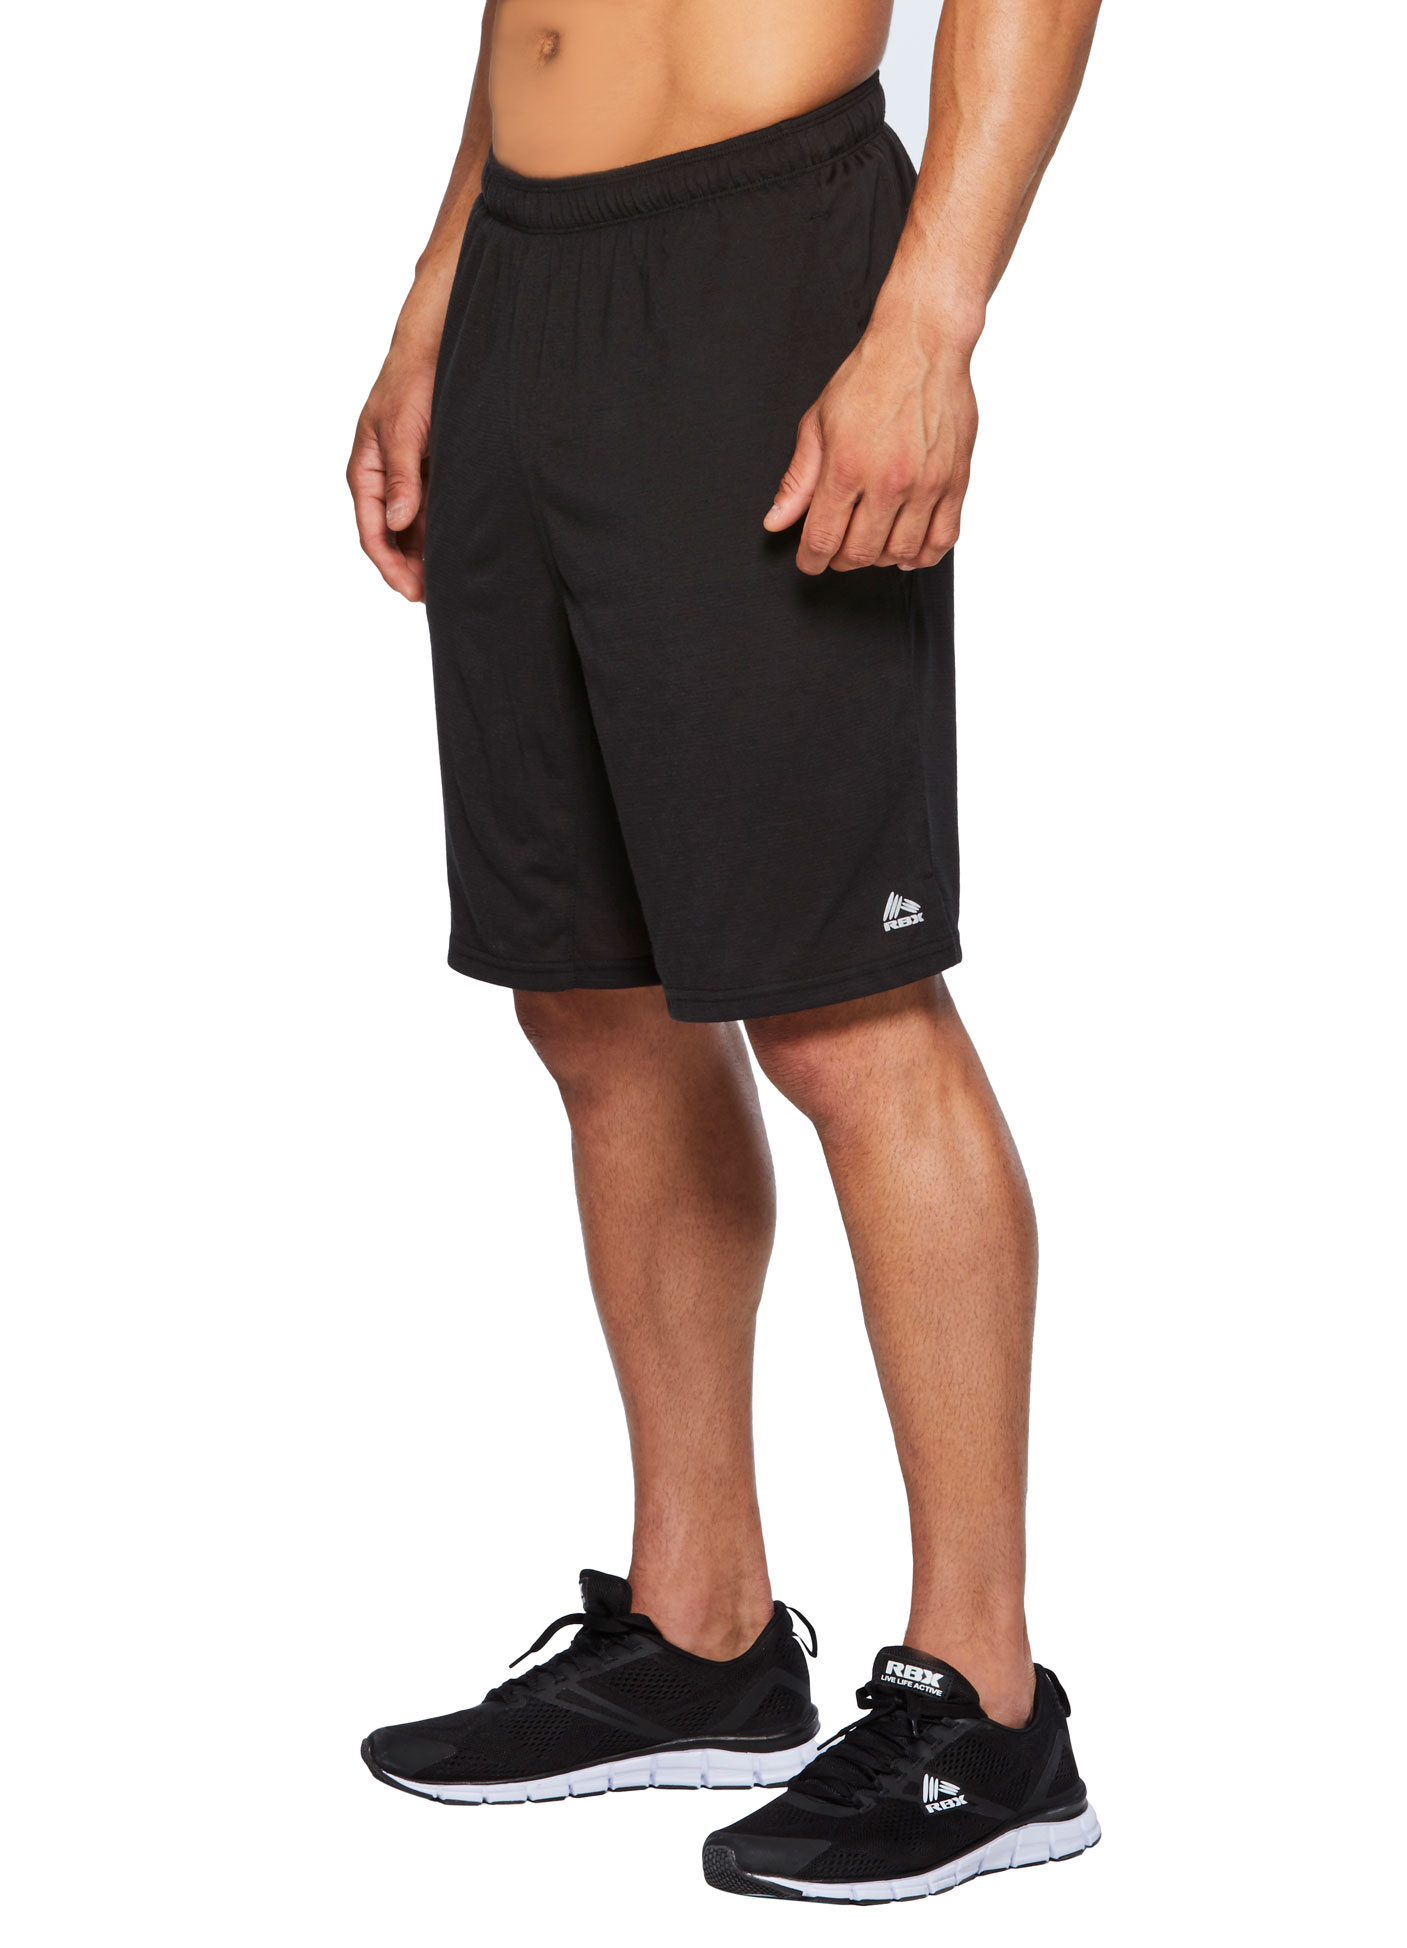 RBX Active Men's Ultra Soft Striped Athletic Workout Running Shorts